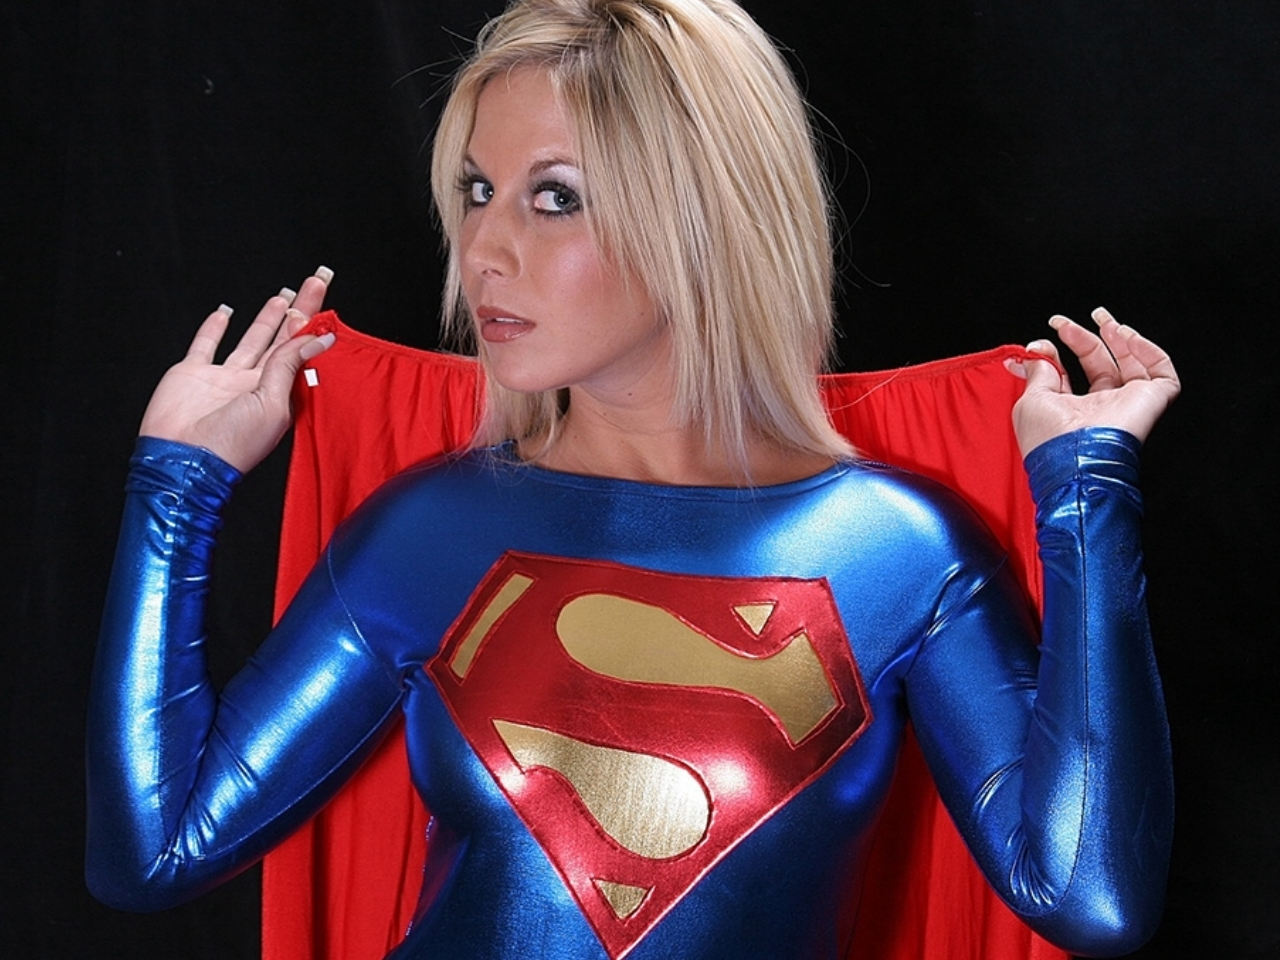 Supergirl artworkporn naked teenage pussies